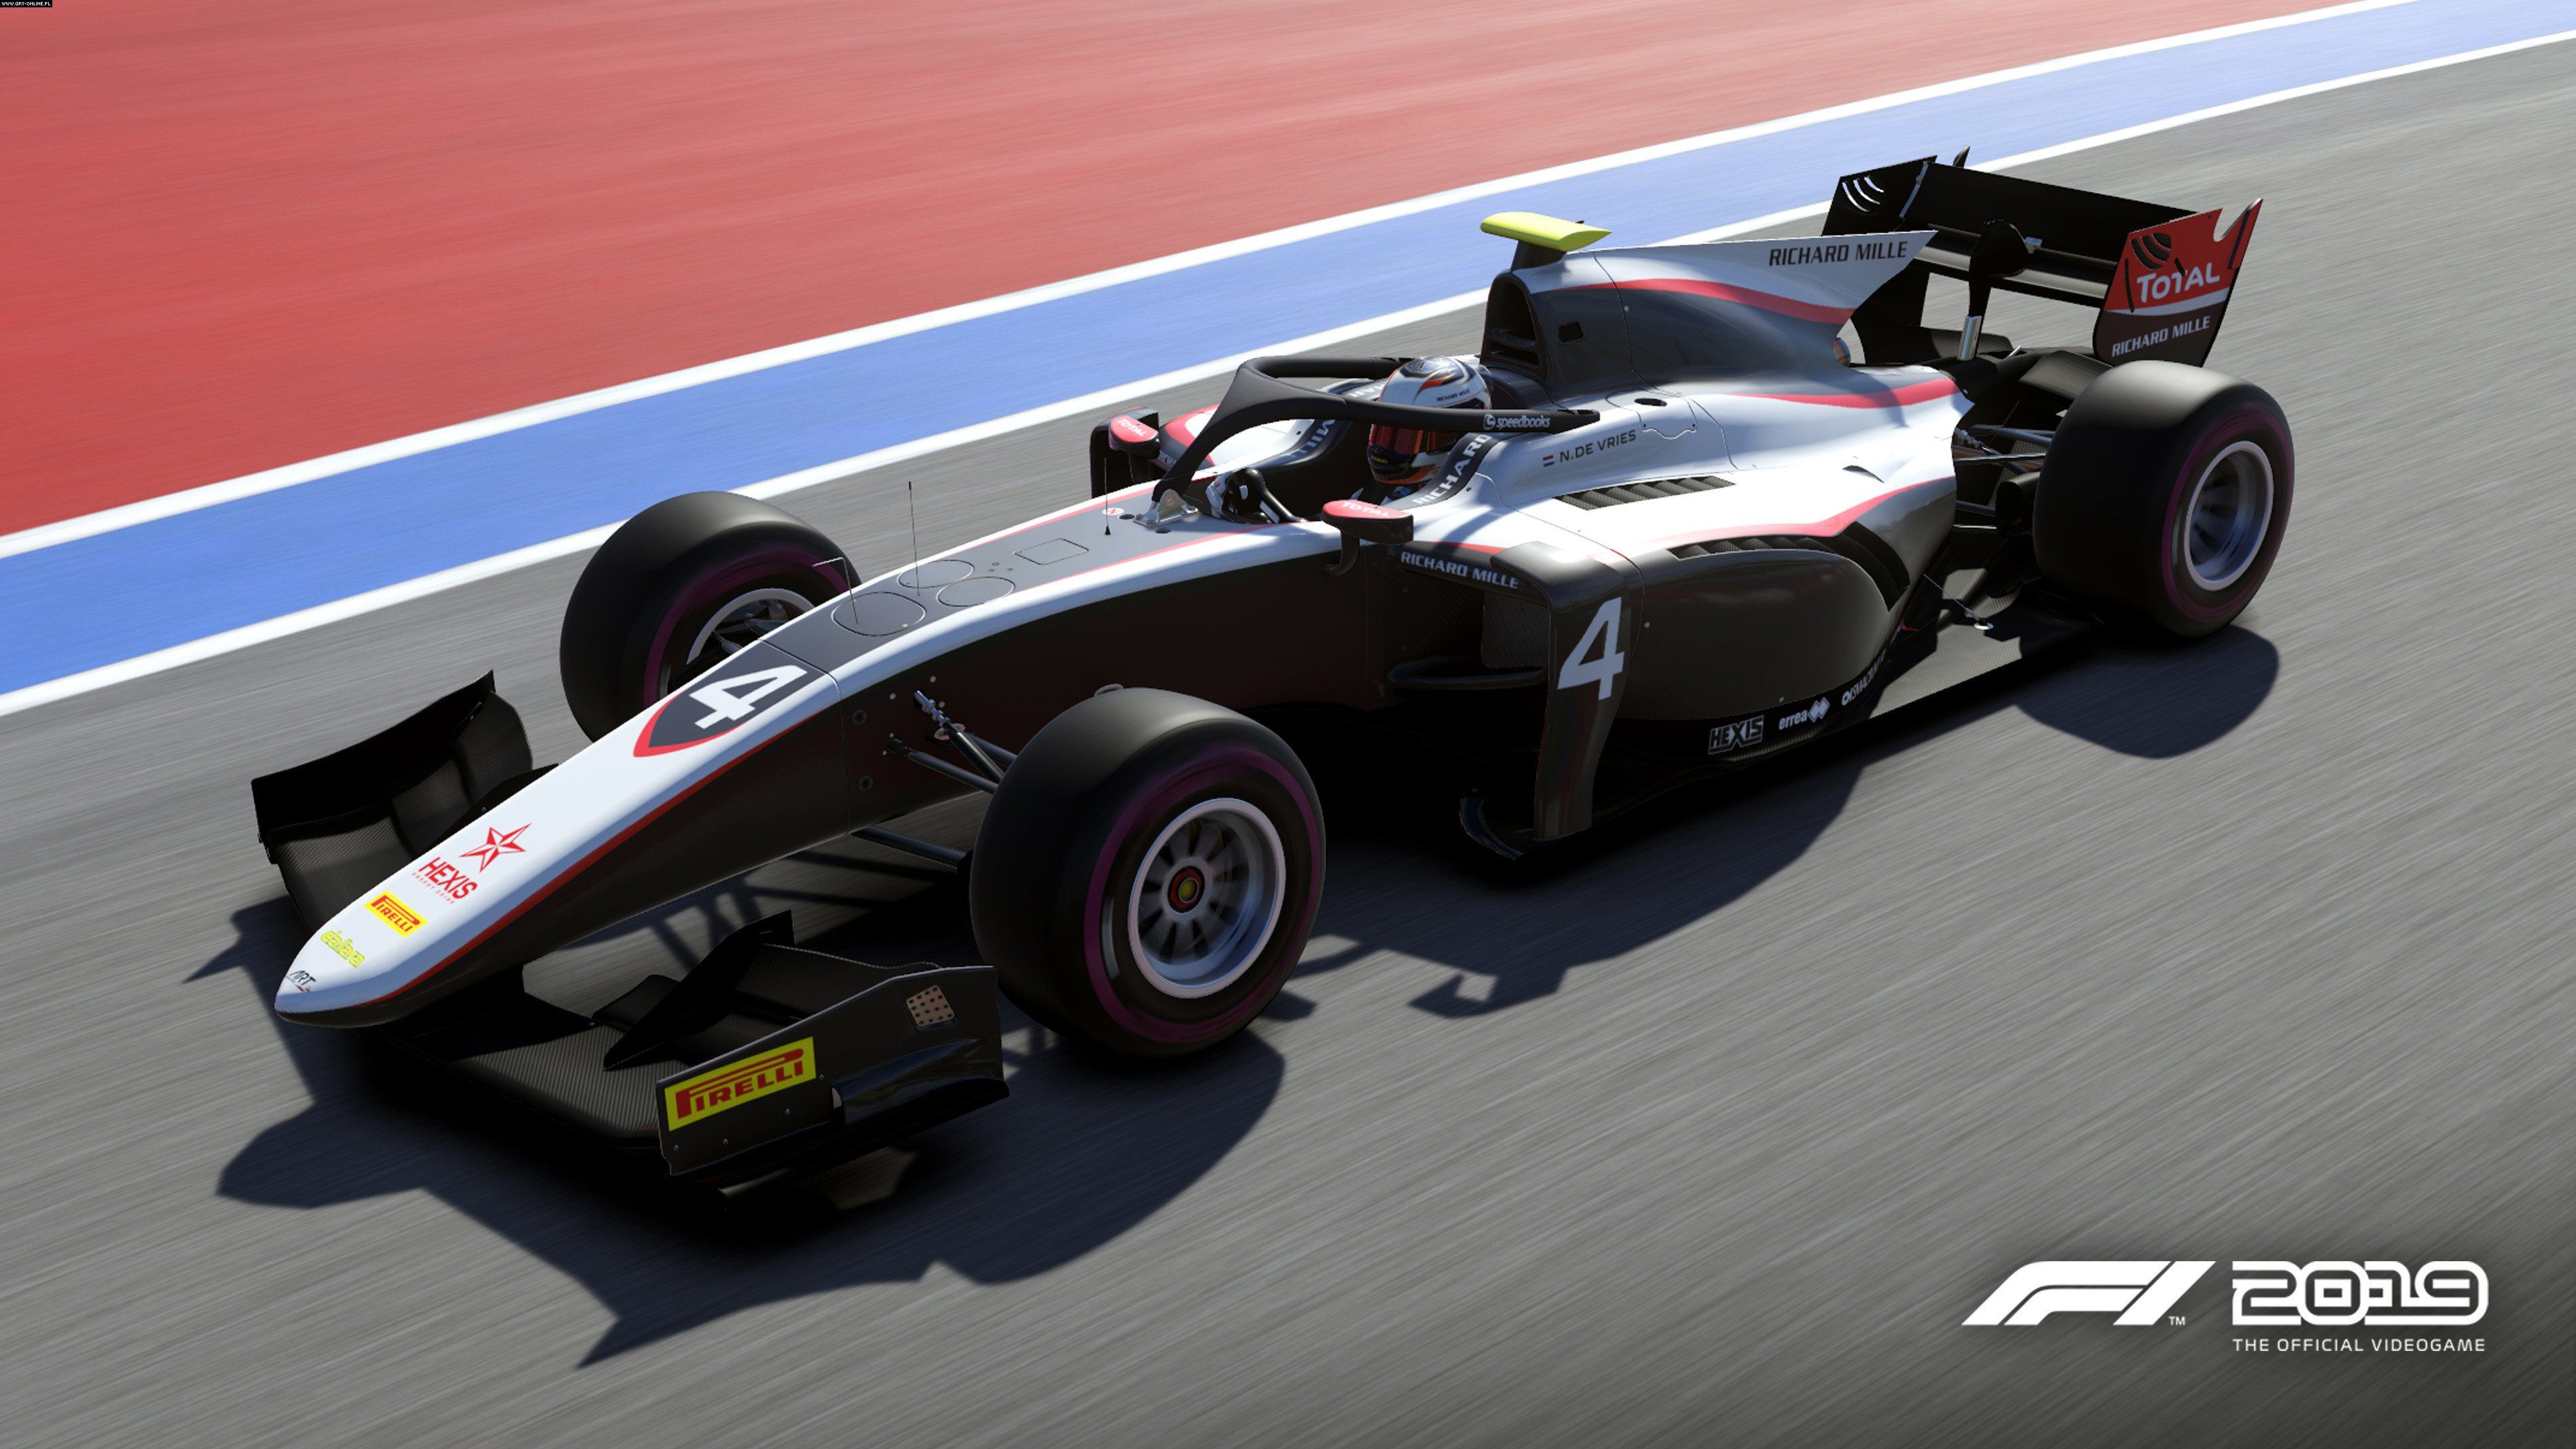 F1 2019 PC, PS4, XONE Games Image 14/104, Codemasters Software